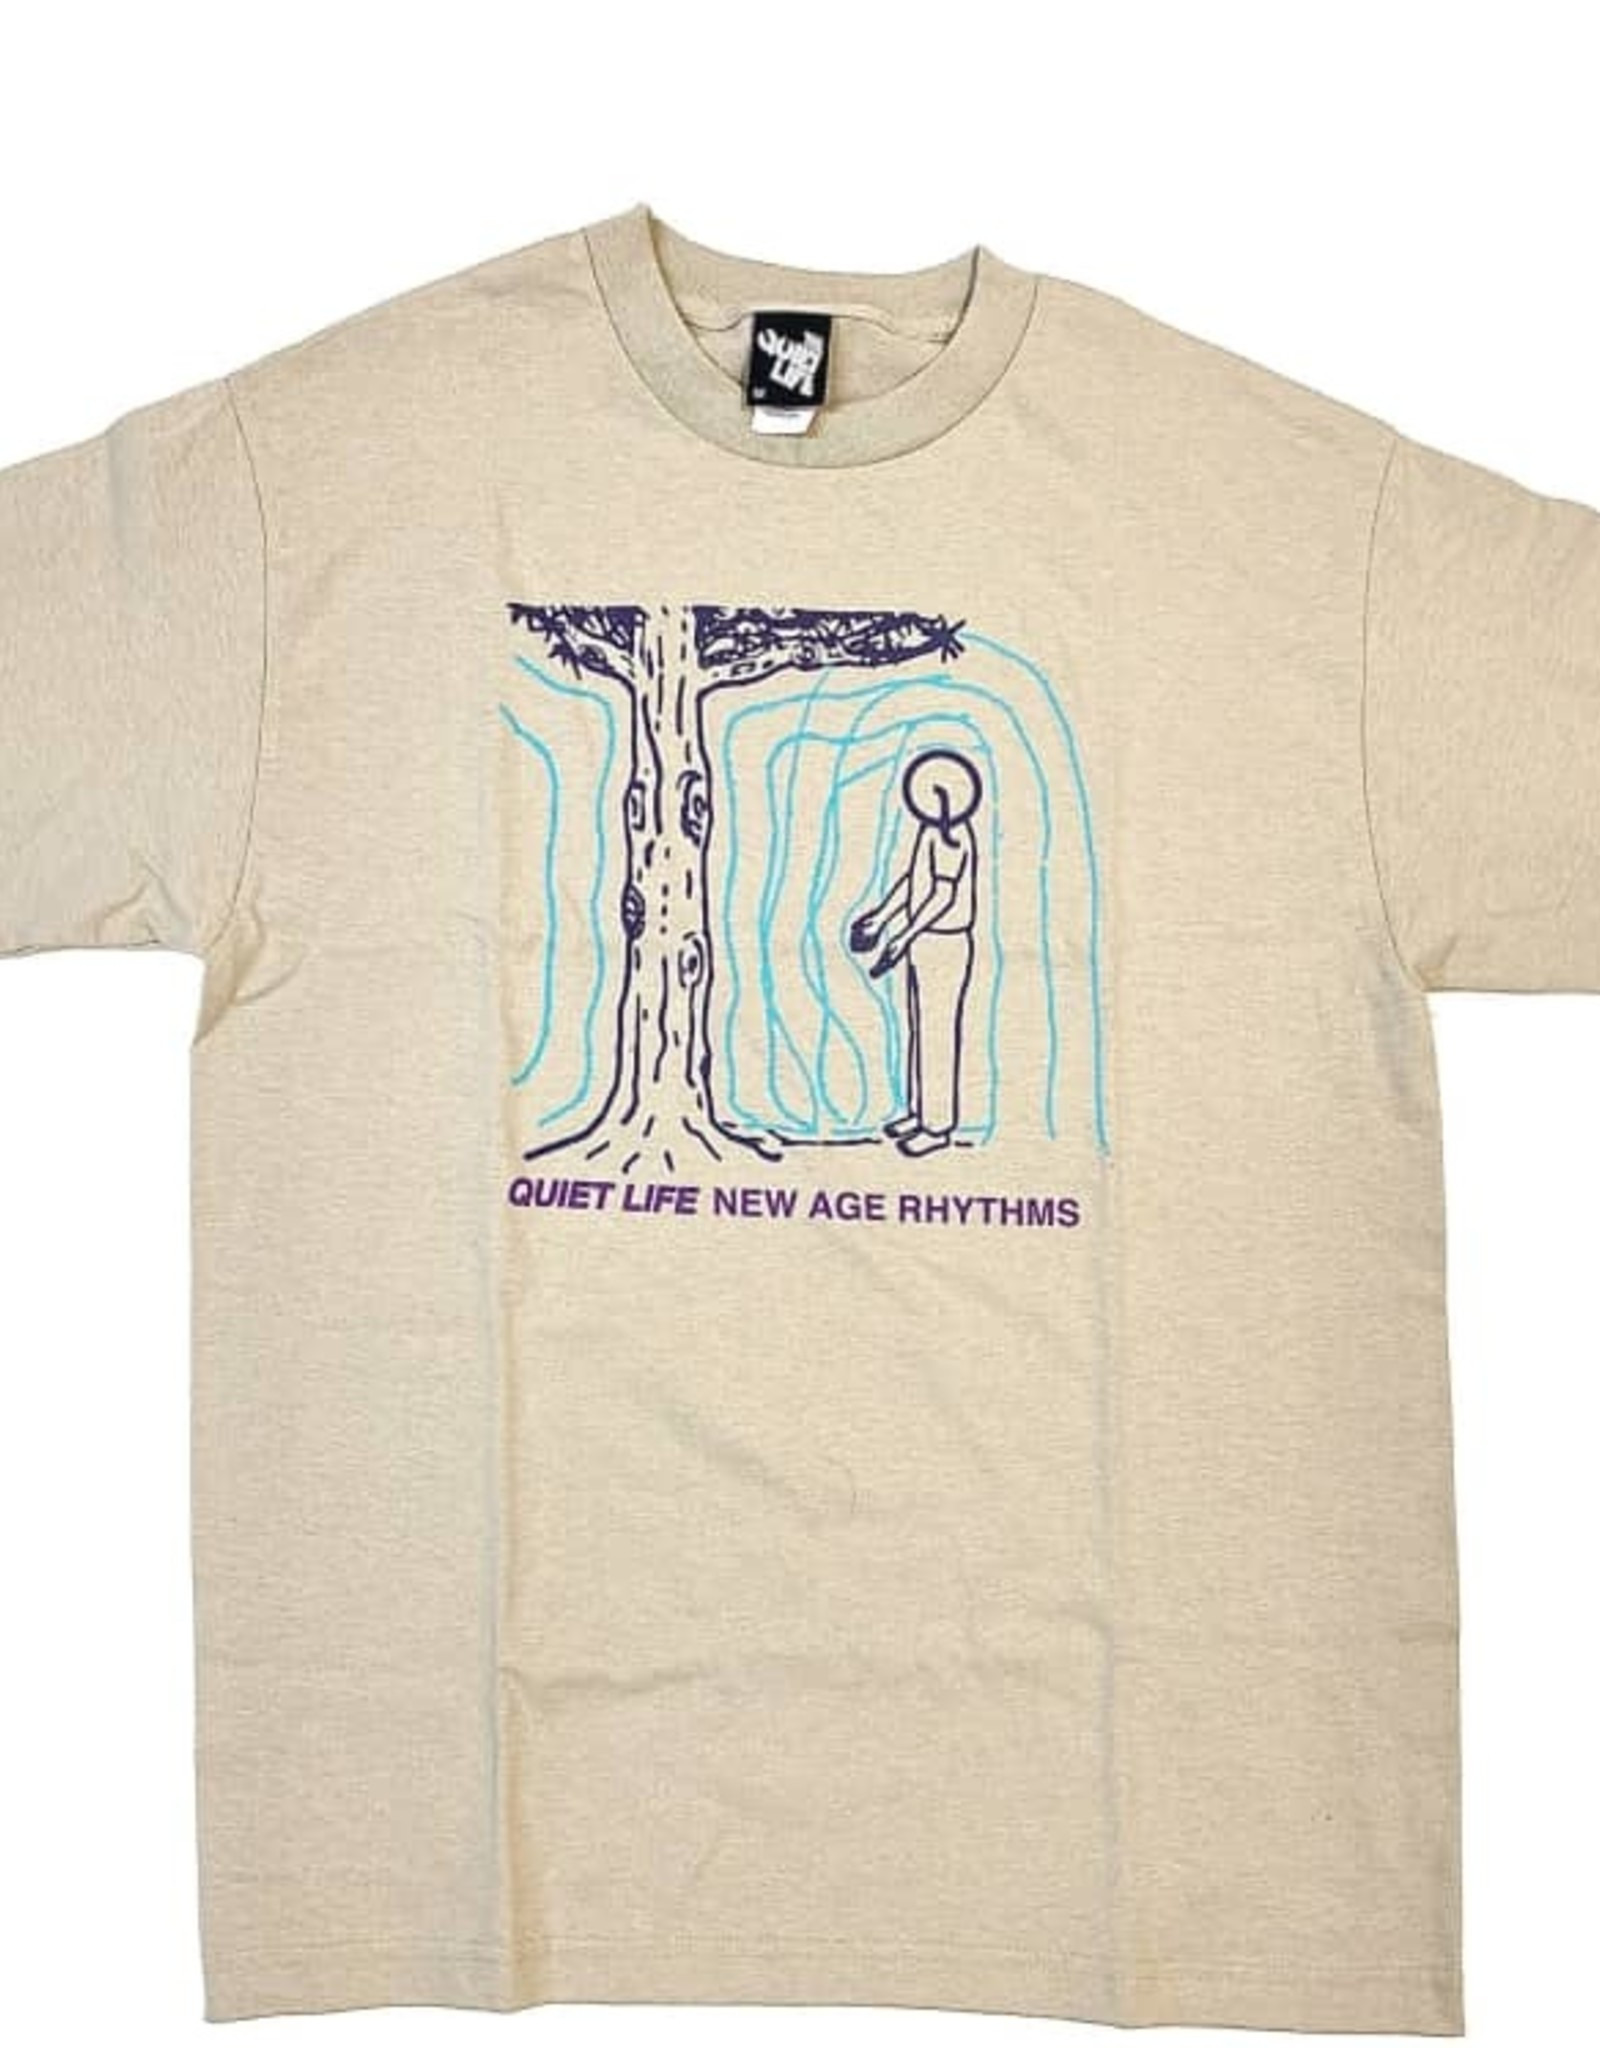 THE QUIET LIFE THE QUIET LIFE NEW AGE RHYTHMS TEE SAND